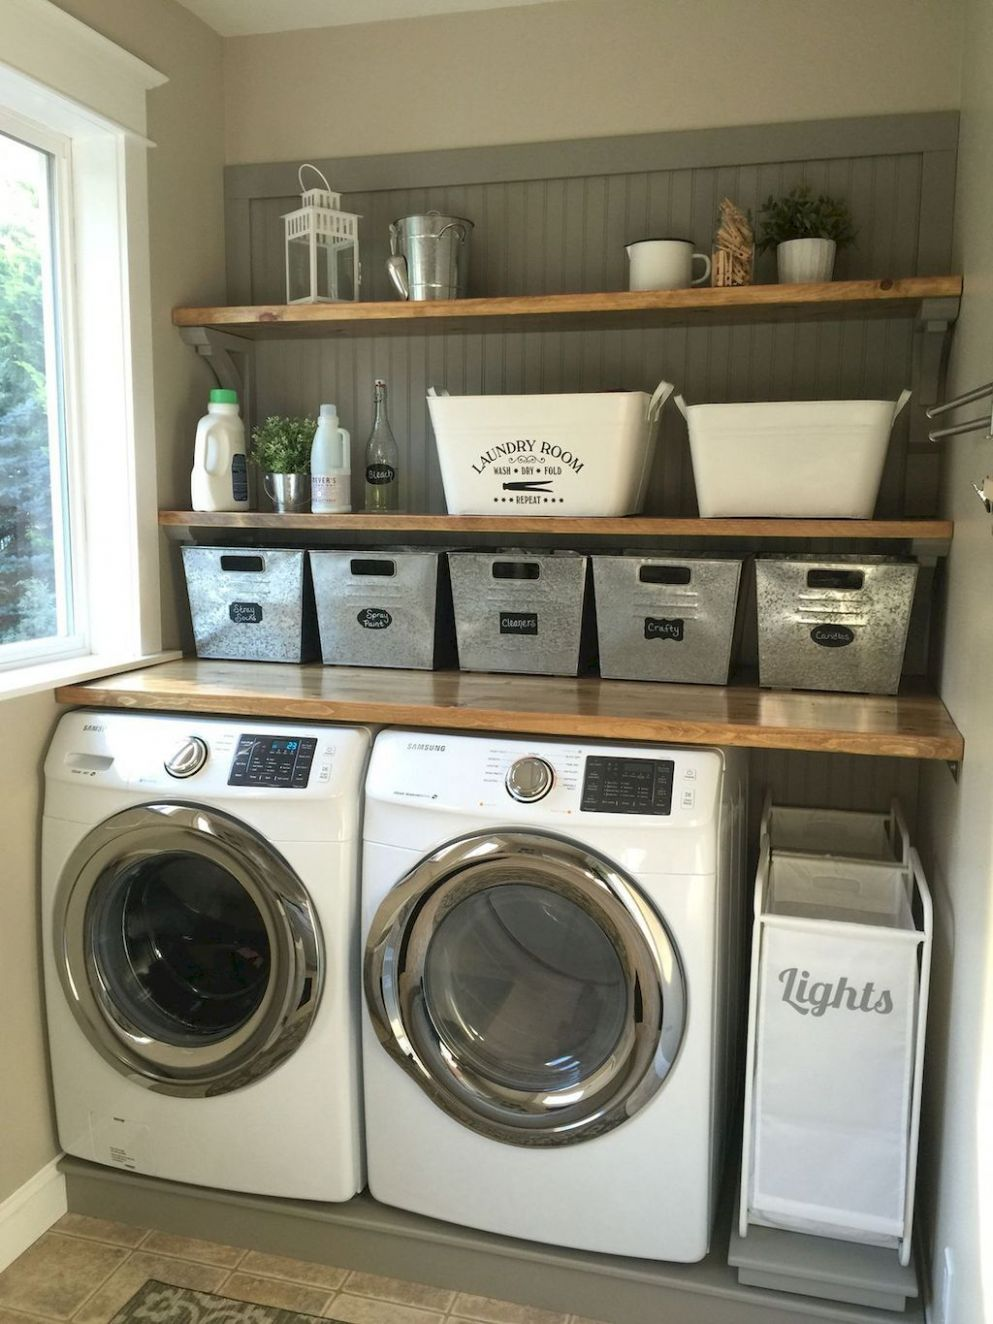 9 Rustic Laundry Room Ideas Decoration Remodel | Laundry room ..